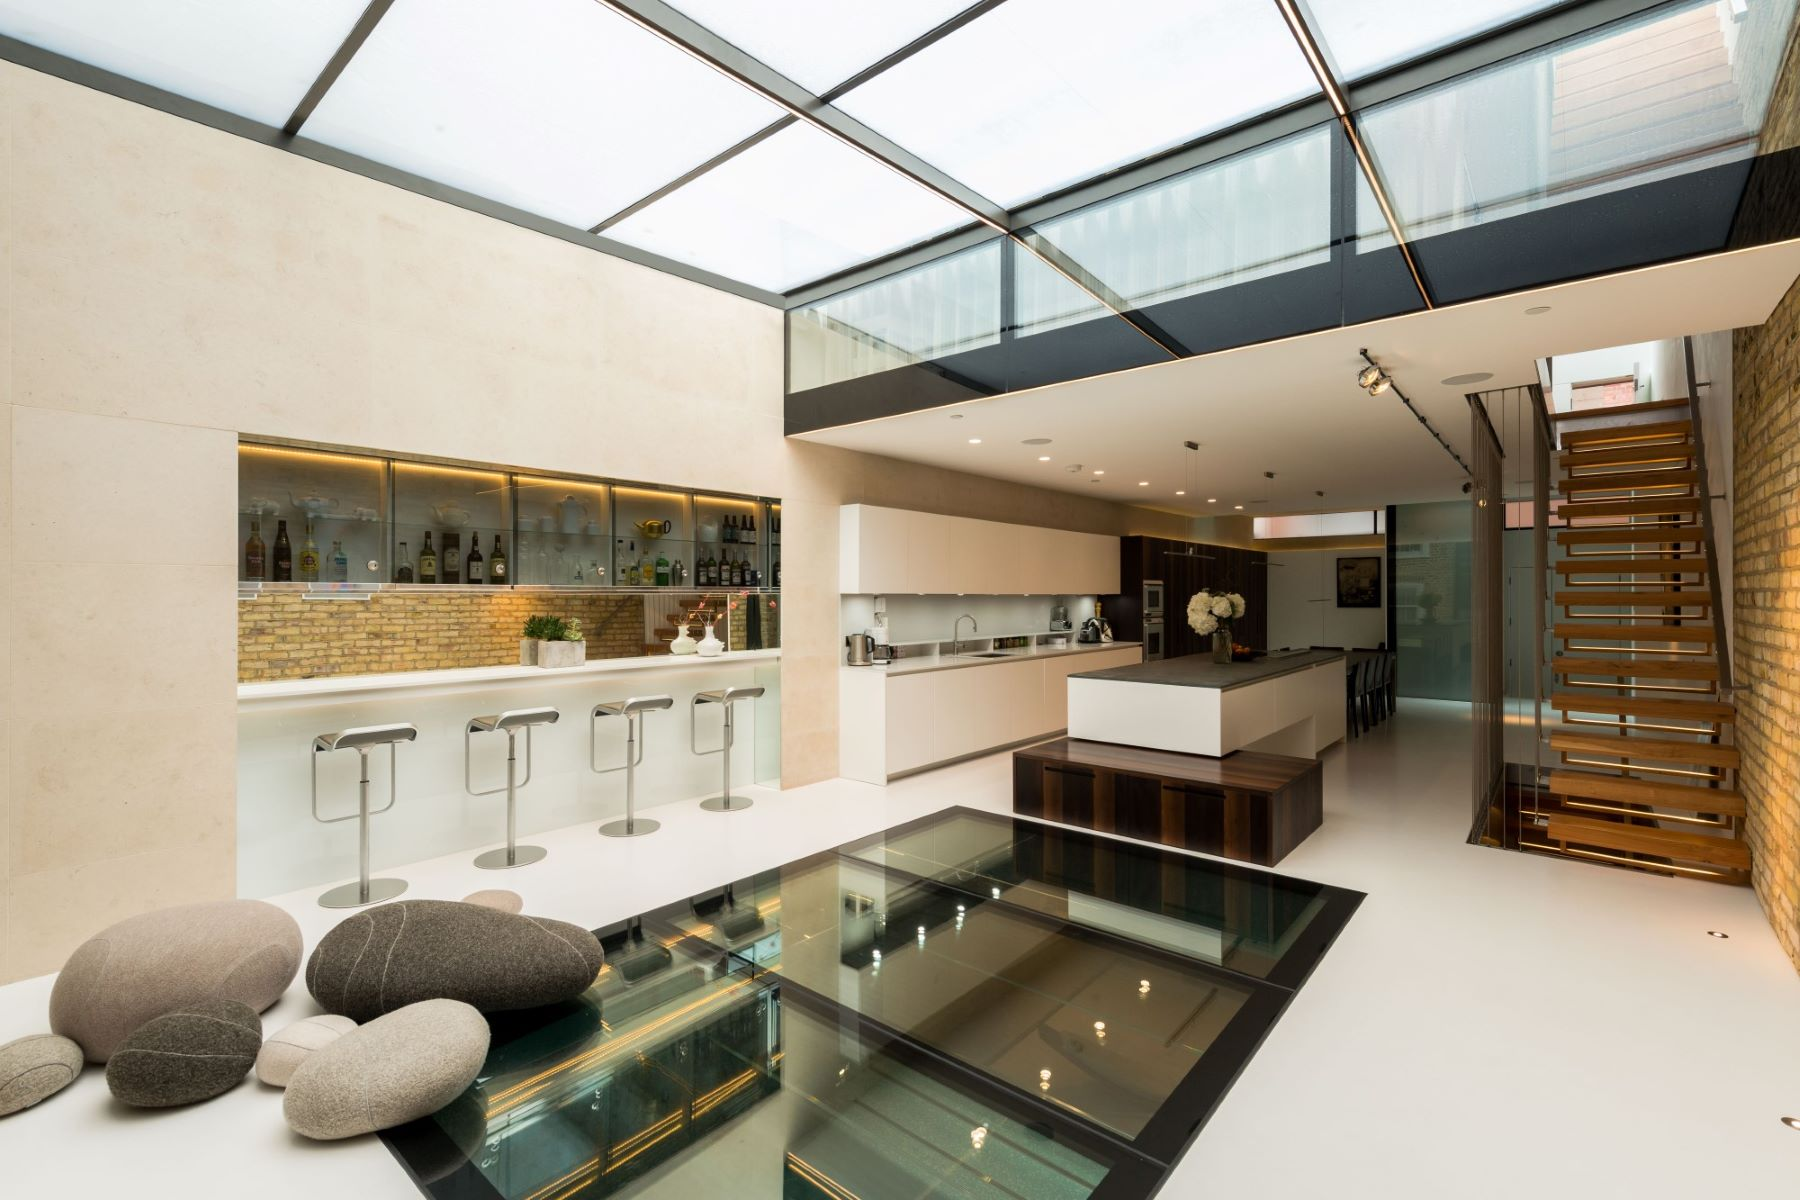 Single Family Home for Sale at Britton Street , Clerkenwell London, England EC1M 5UU United Kingdom